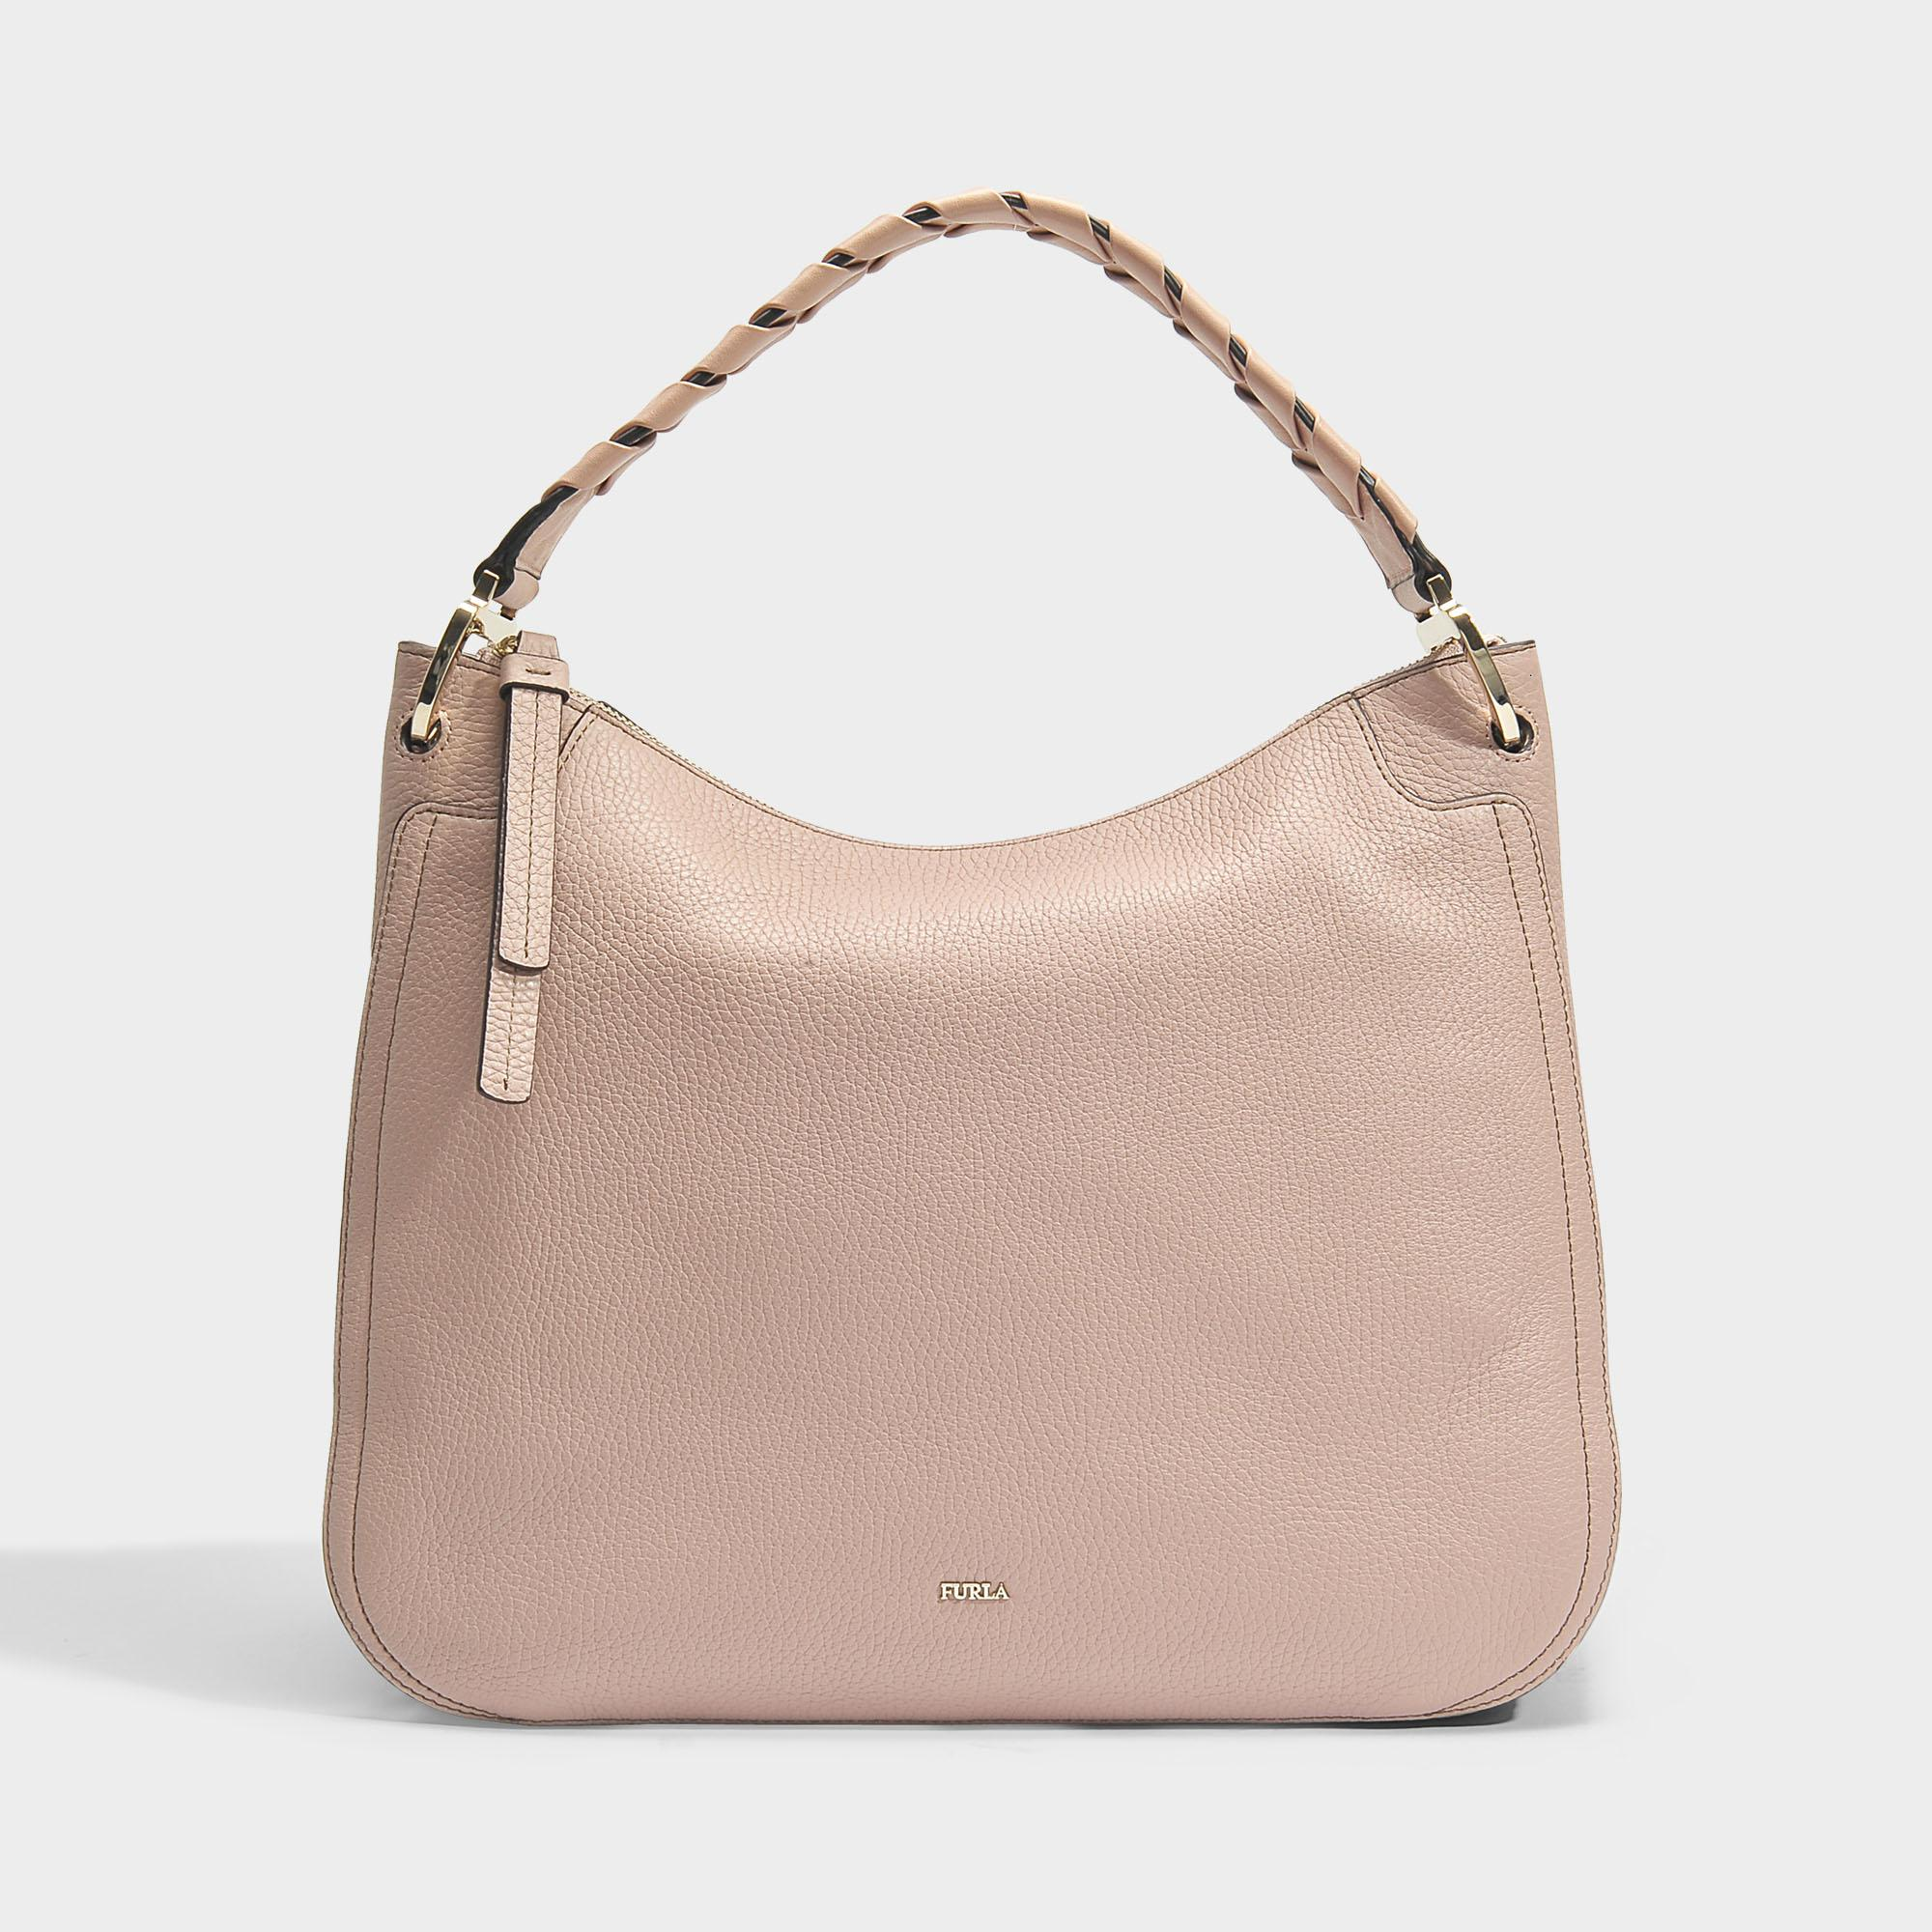 Clearance Purchase Rialto Large Hobo Bag in Sabbia Calfskin Furla Cheap Sale Official Free Shipping Enjoy Cheap Discount Sale Extremely For Sale NxGilnz